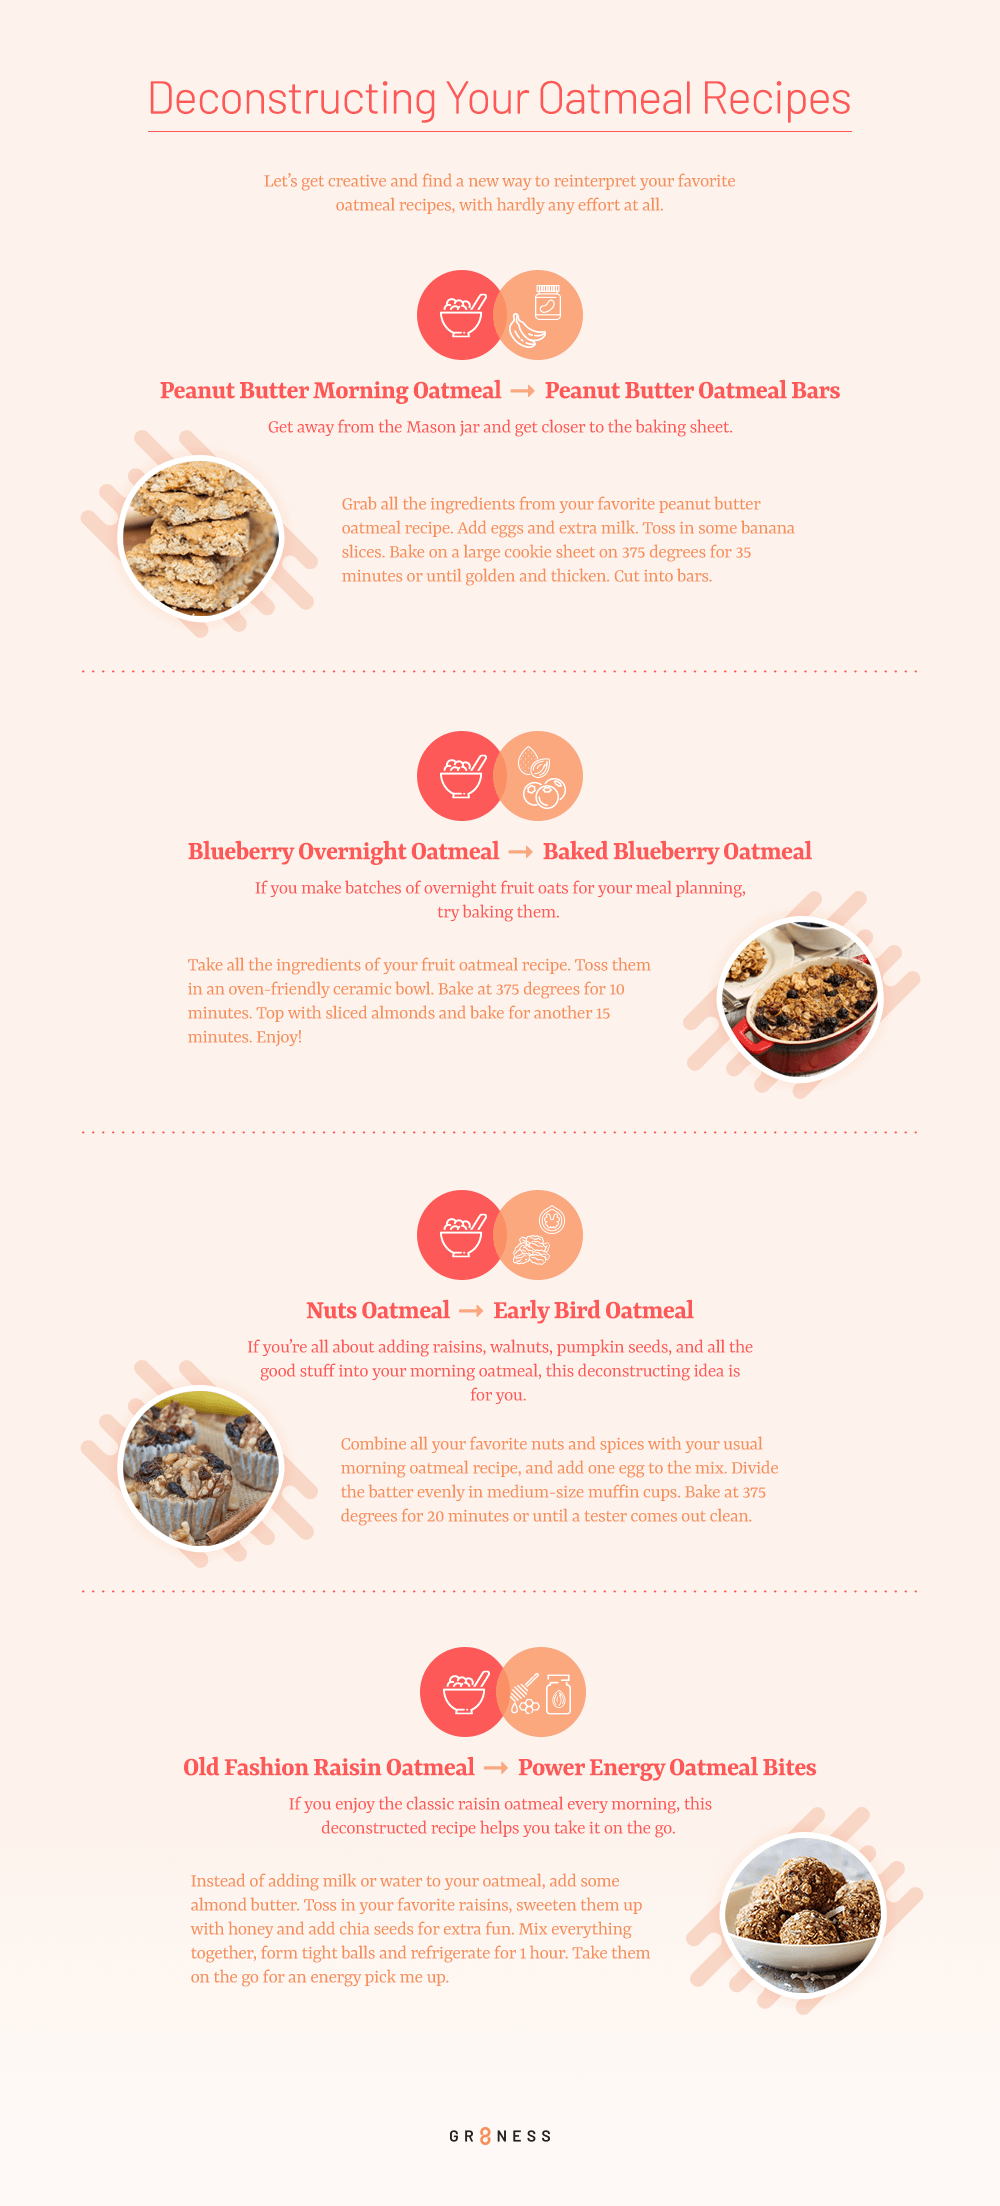 An infographic deconstructing your oatmeal recipes